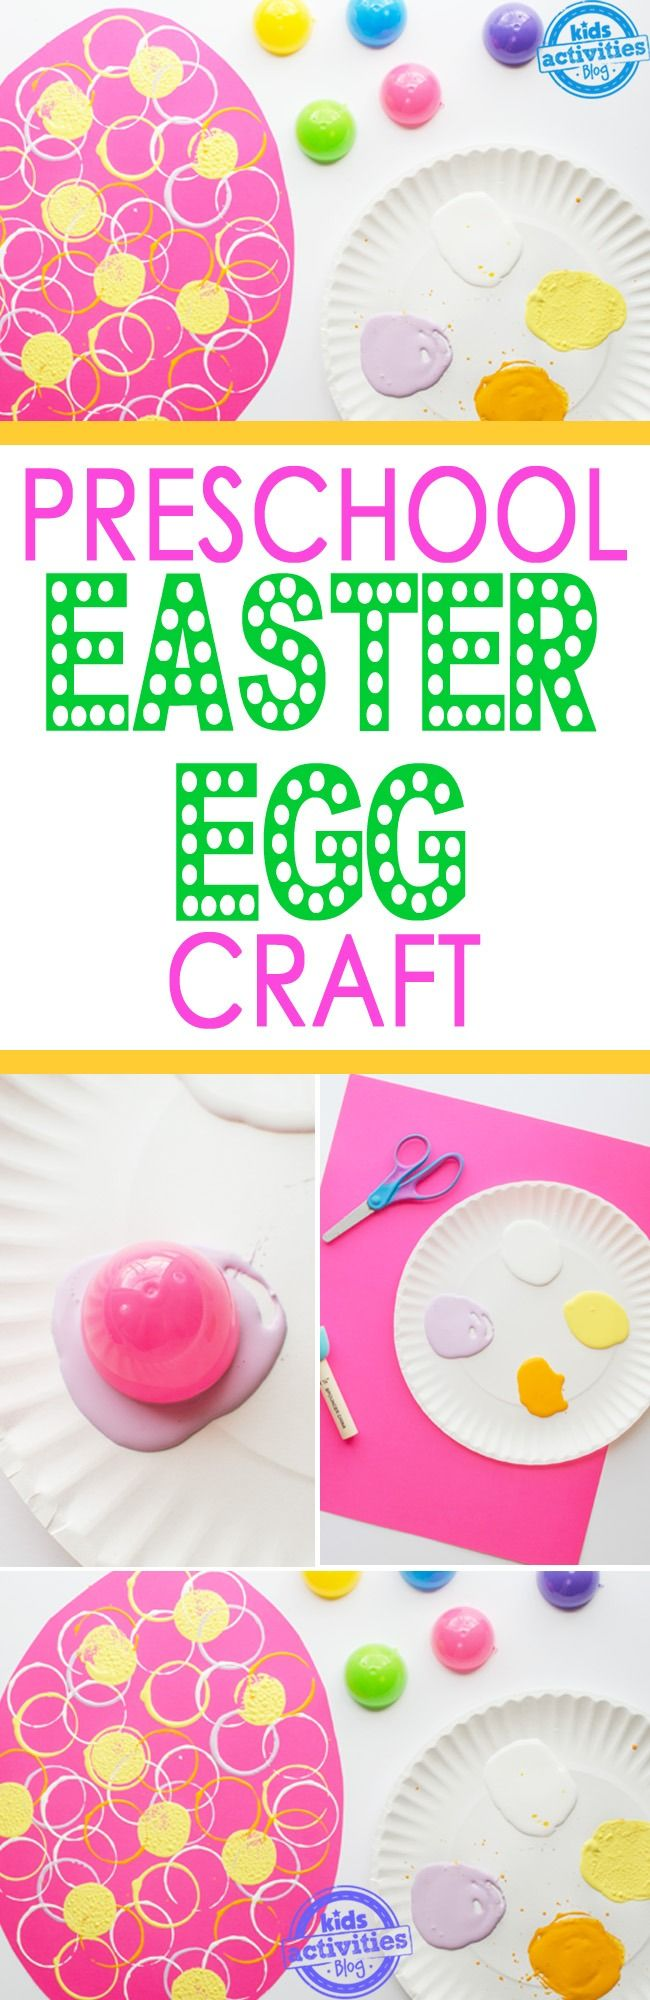 155 best Easter images on Pinterest | Activities, Easter and Easter ...